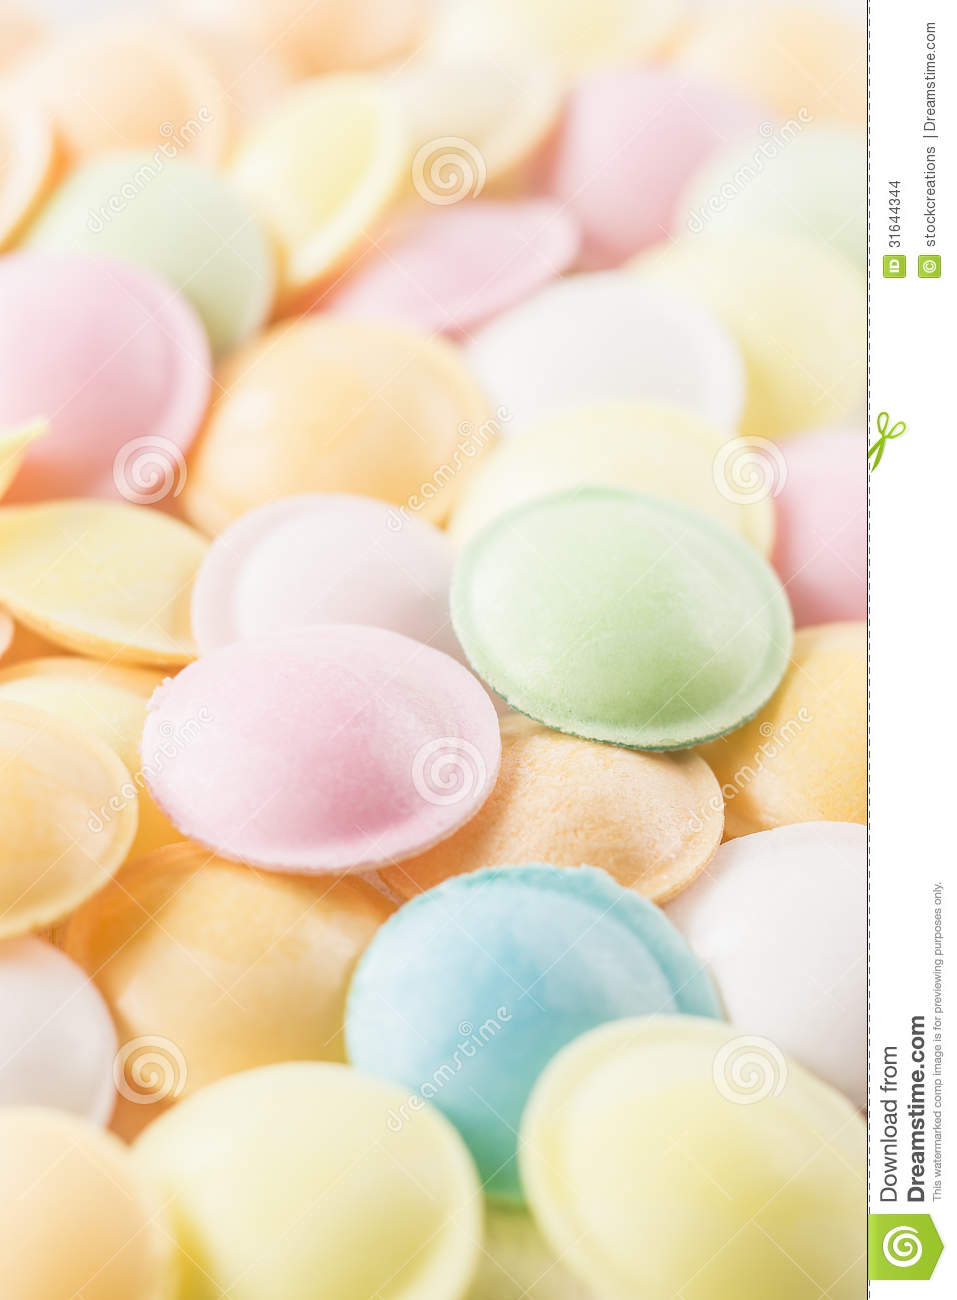 Background Texture Made Of Many Round Candies Stock Images ...